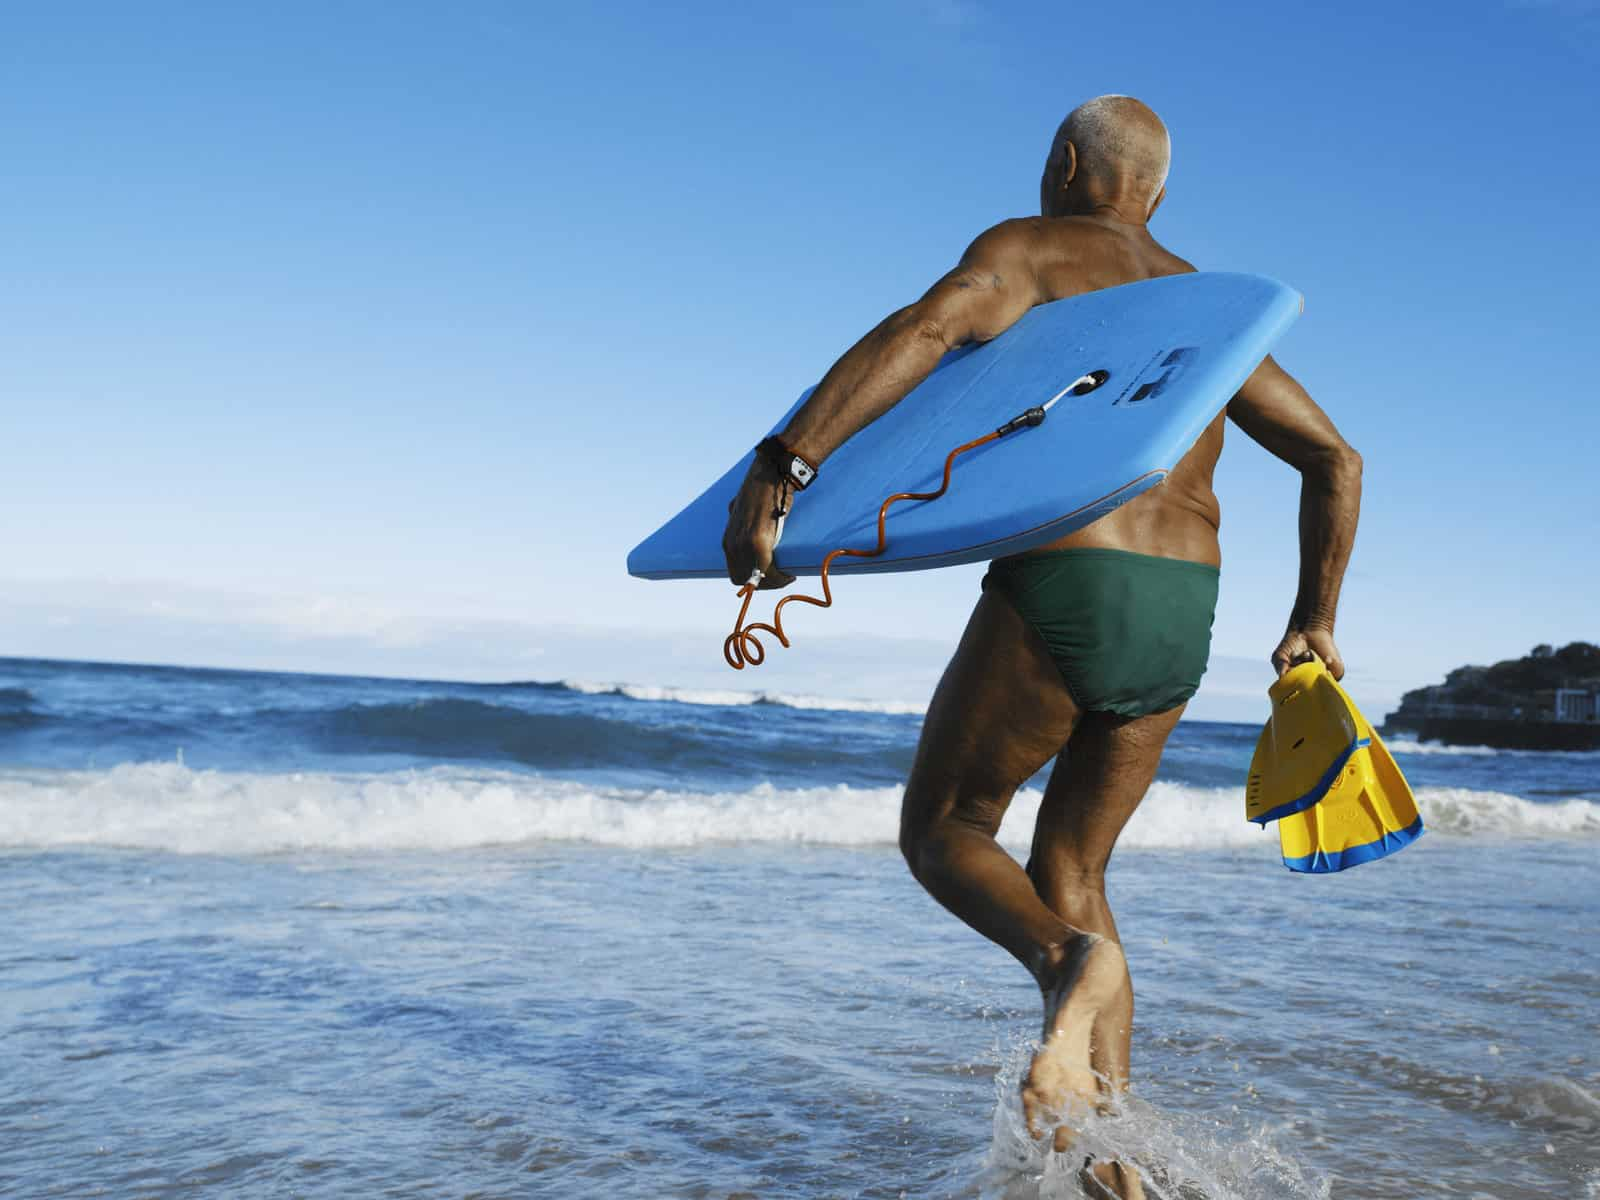 Senior Exercise old man surfing beach